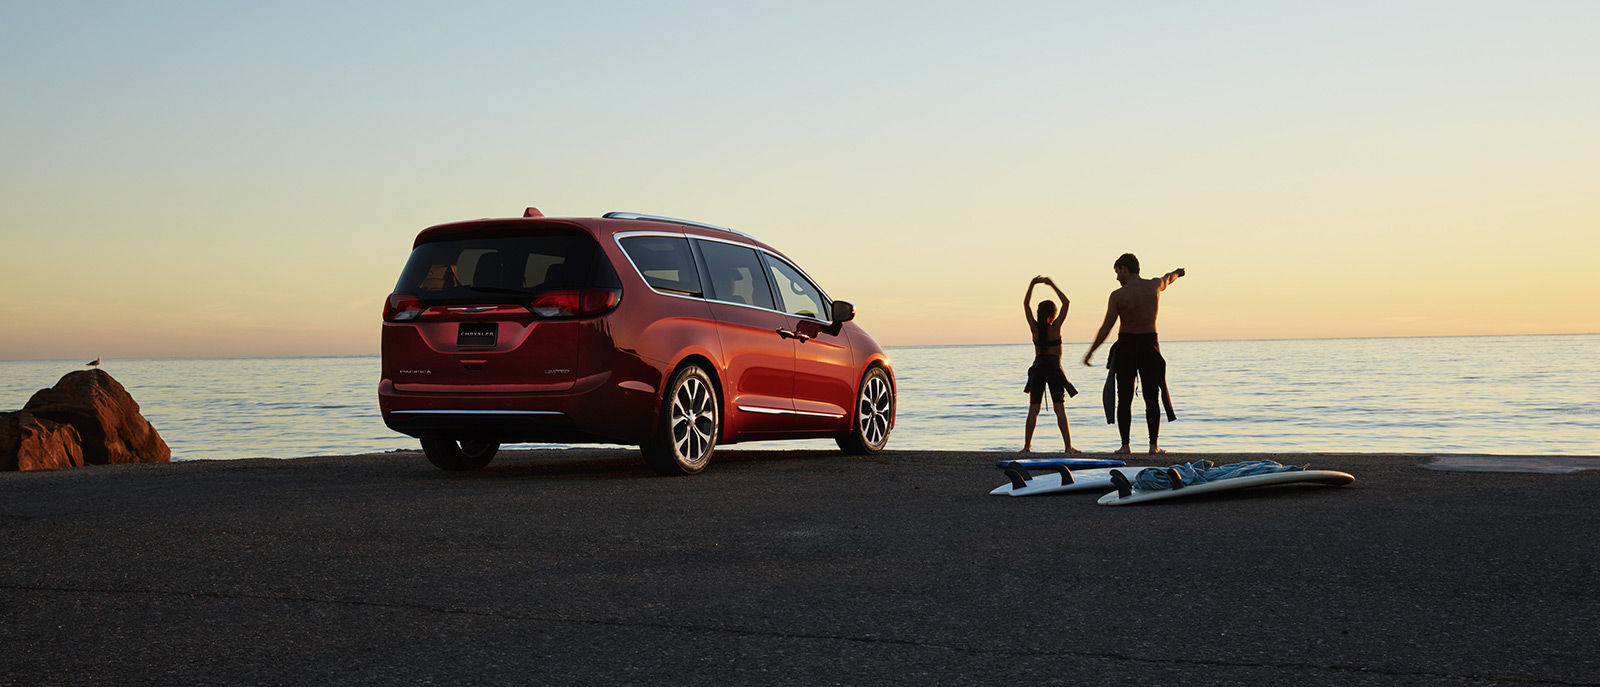 Red Pacifica Rear Exterior Surfing